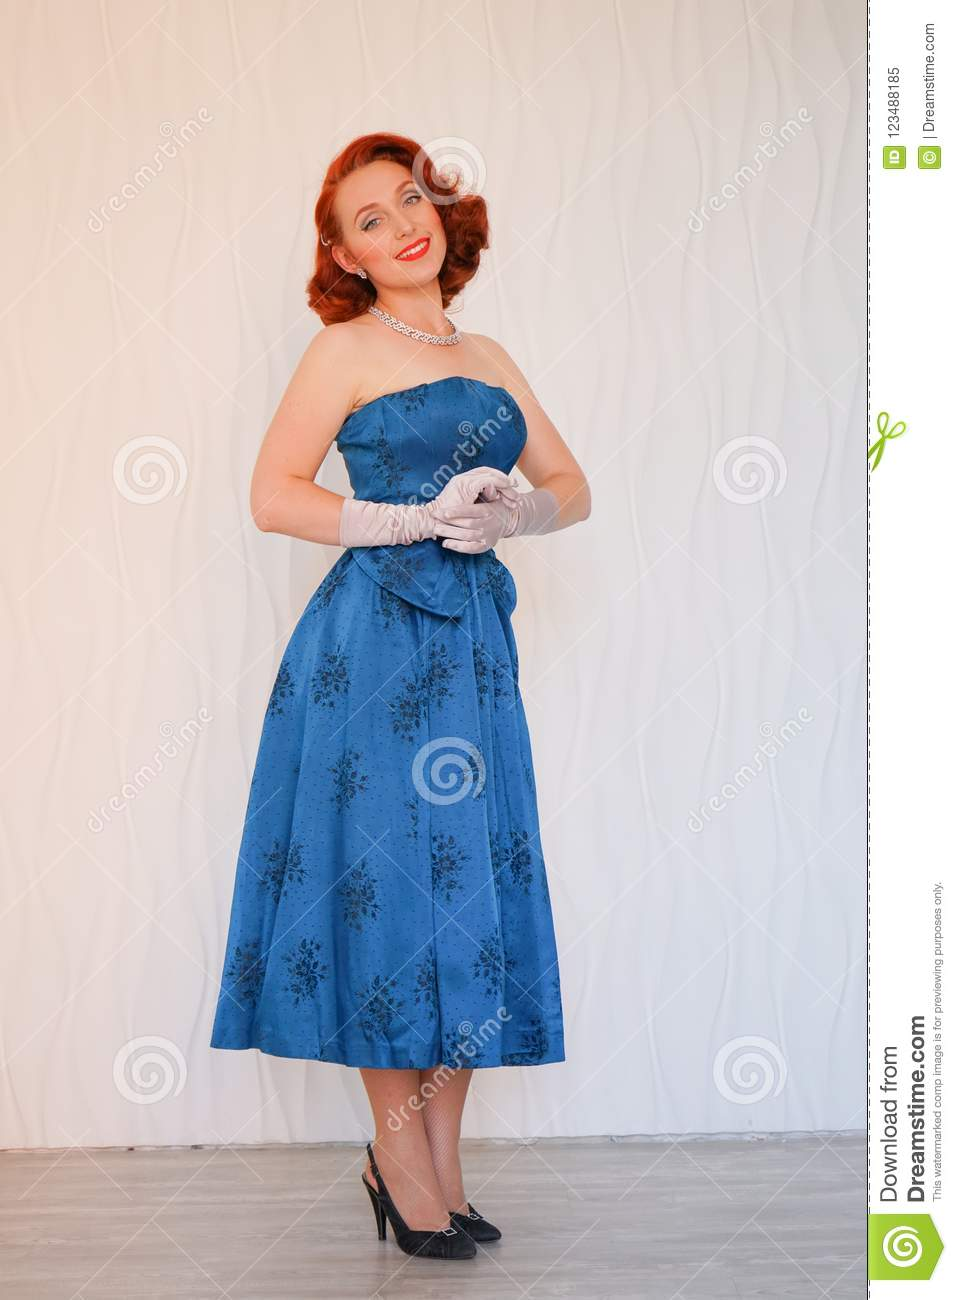 Beautiful pin up woman standing in blue dress against white wall in empty room and smiling